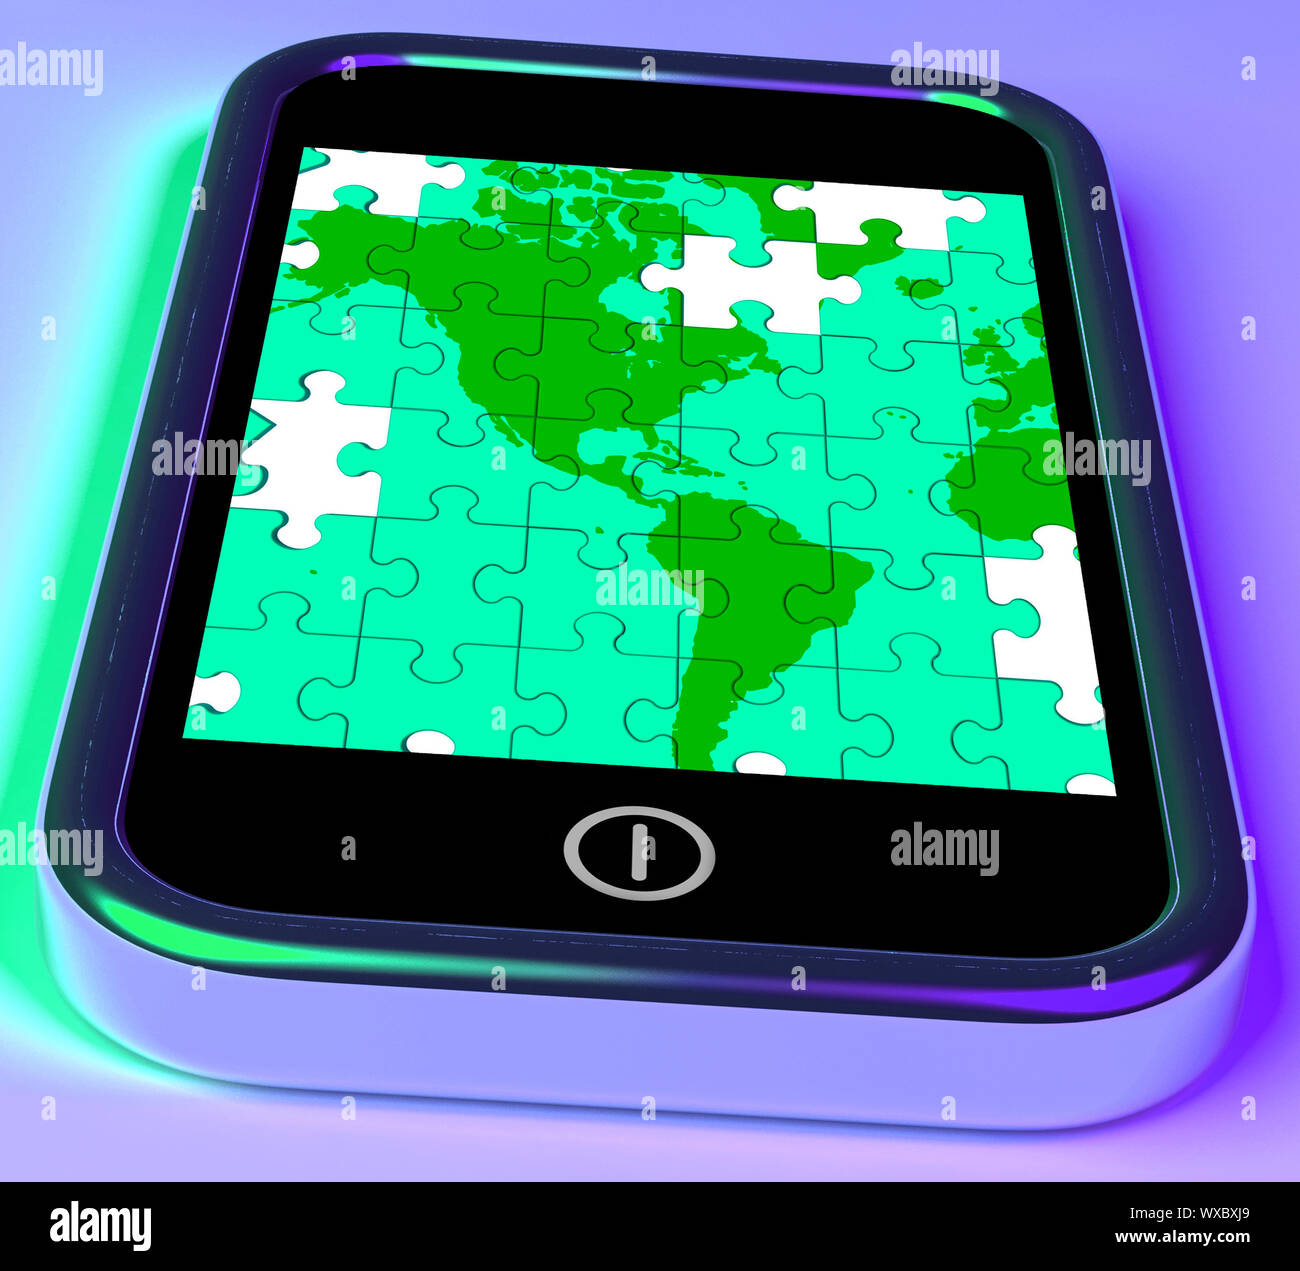 Map Of America On Smartphone Shows Mobile Global Communications Or American Territory Stock Photo